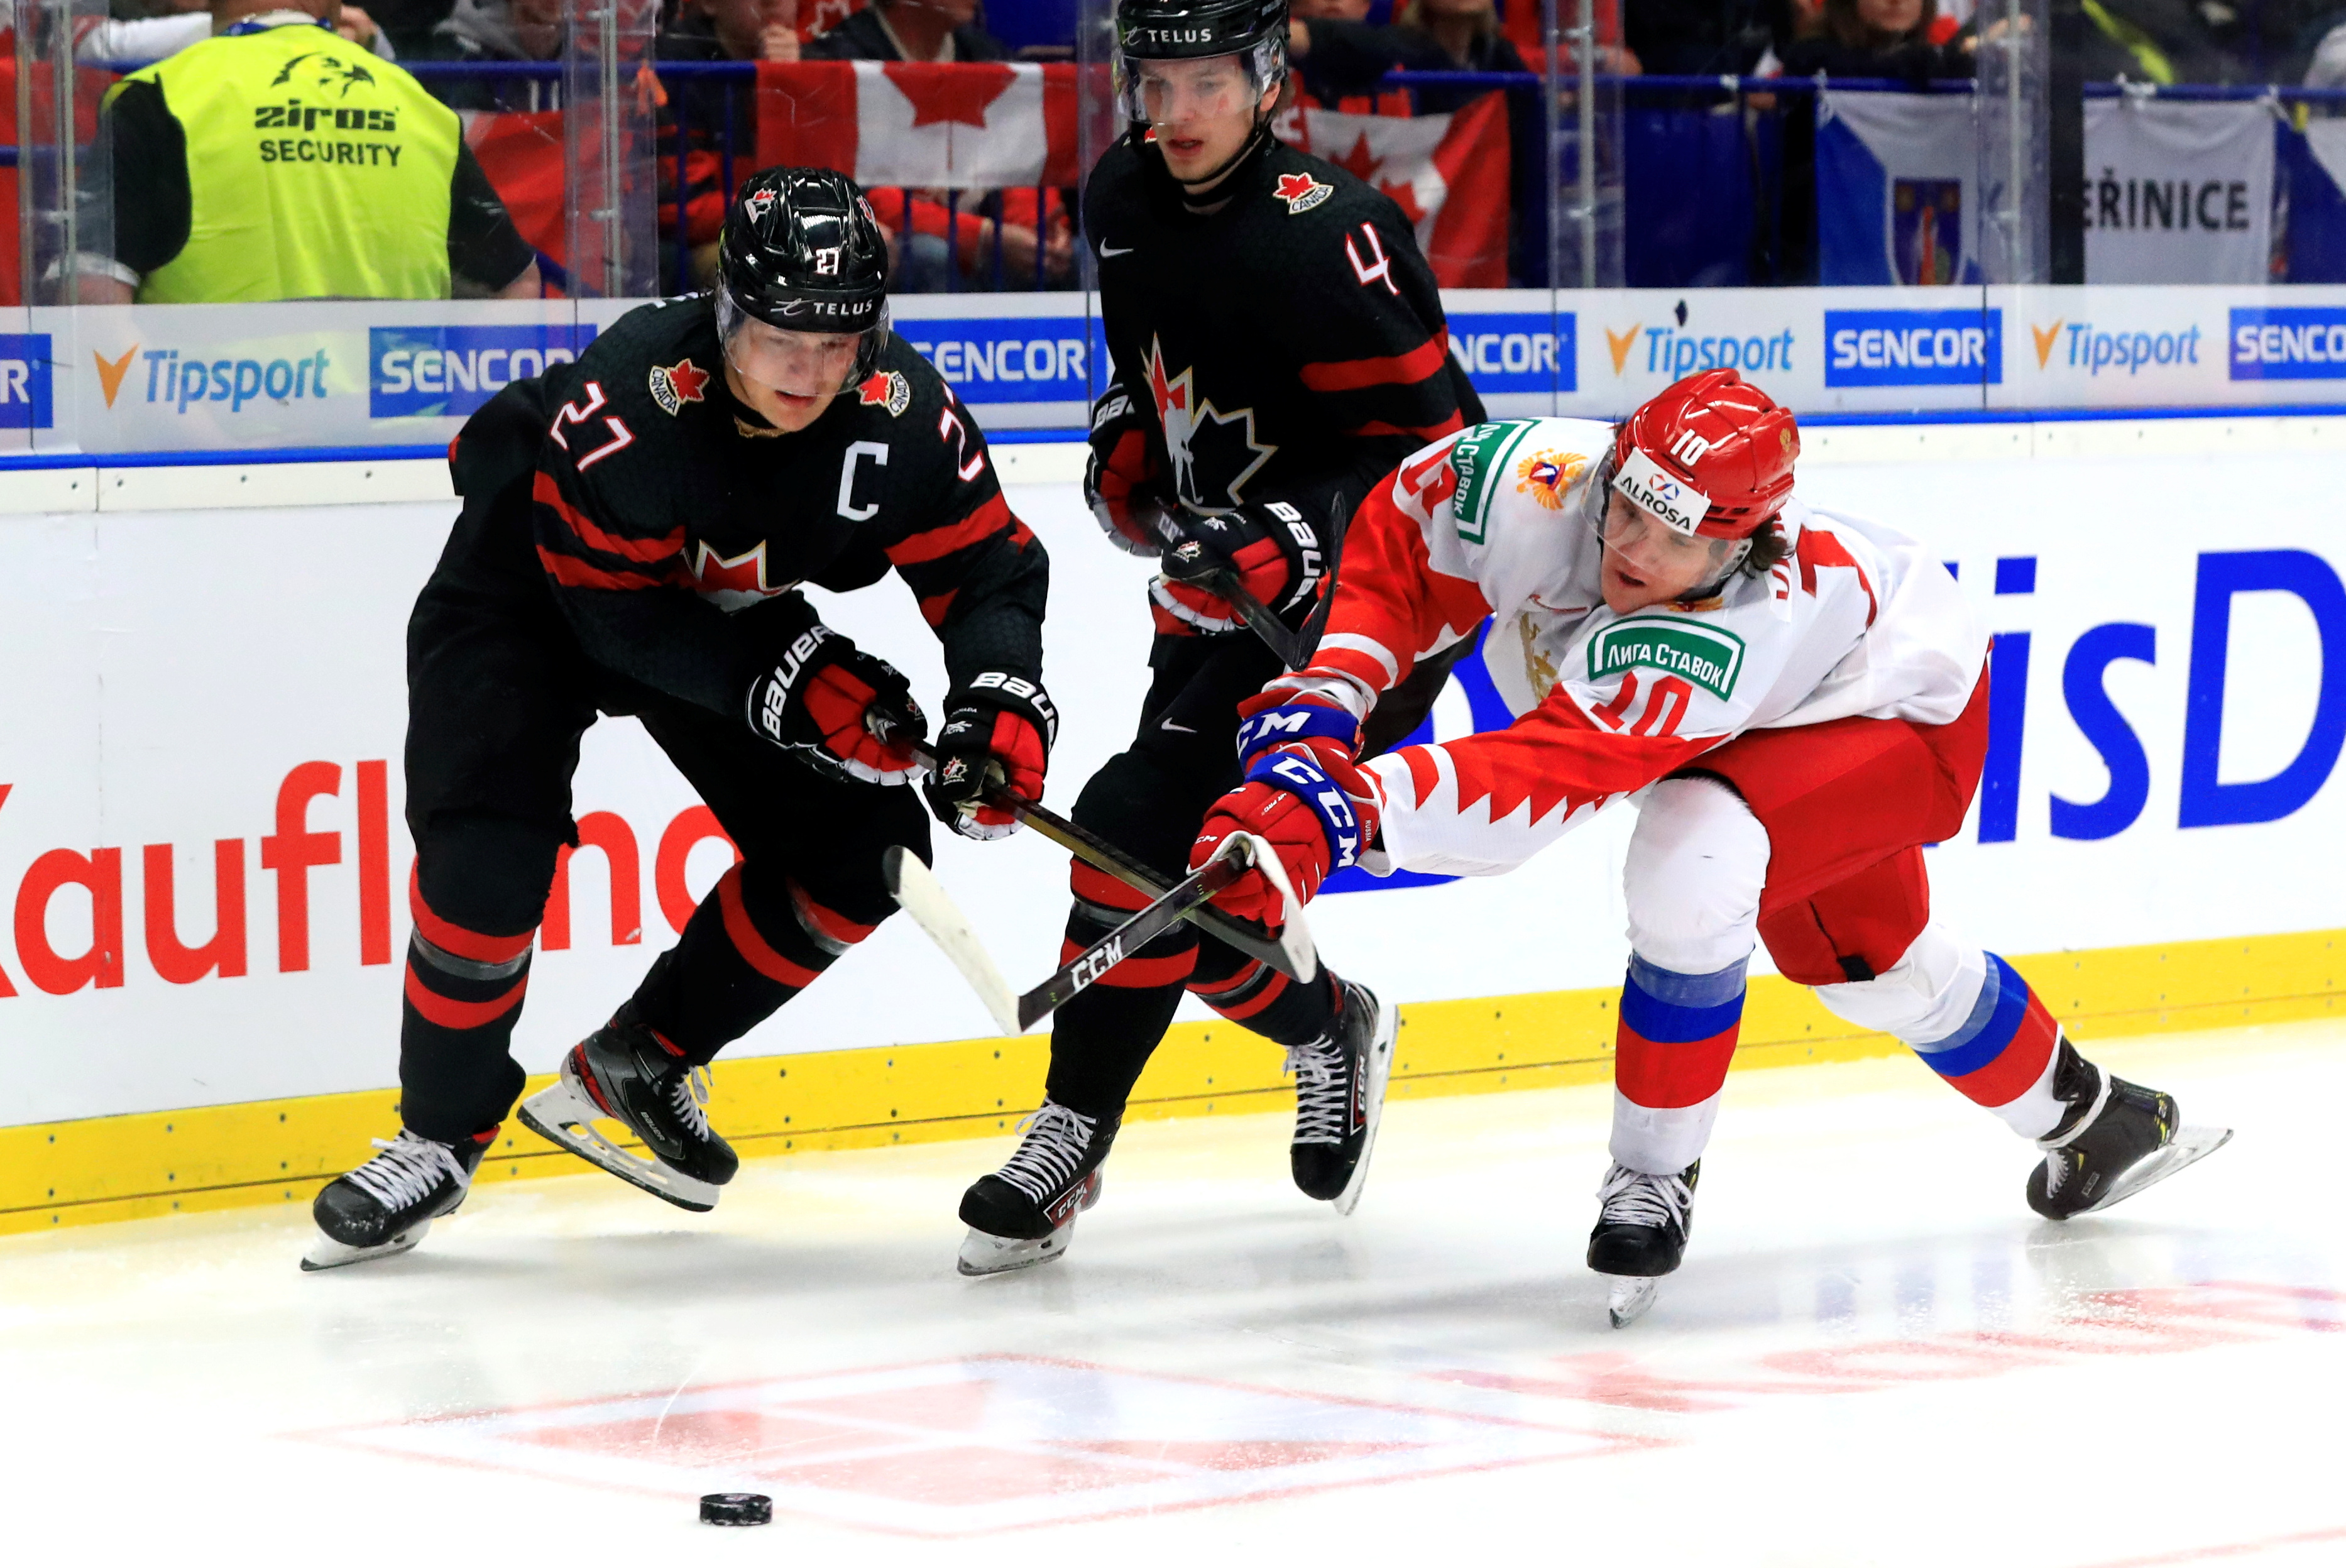 Canada's Barrett Hayton, Bowen Byram, and Russia's Dmitry Voronkov (L-R) in the 2020 World Junior Ice Hockey Championship final match between Canada and Russia at Ostravar Arena.